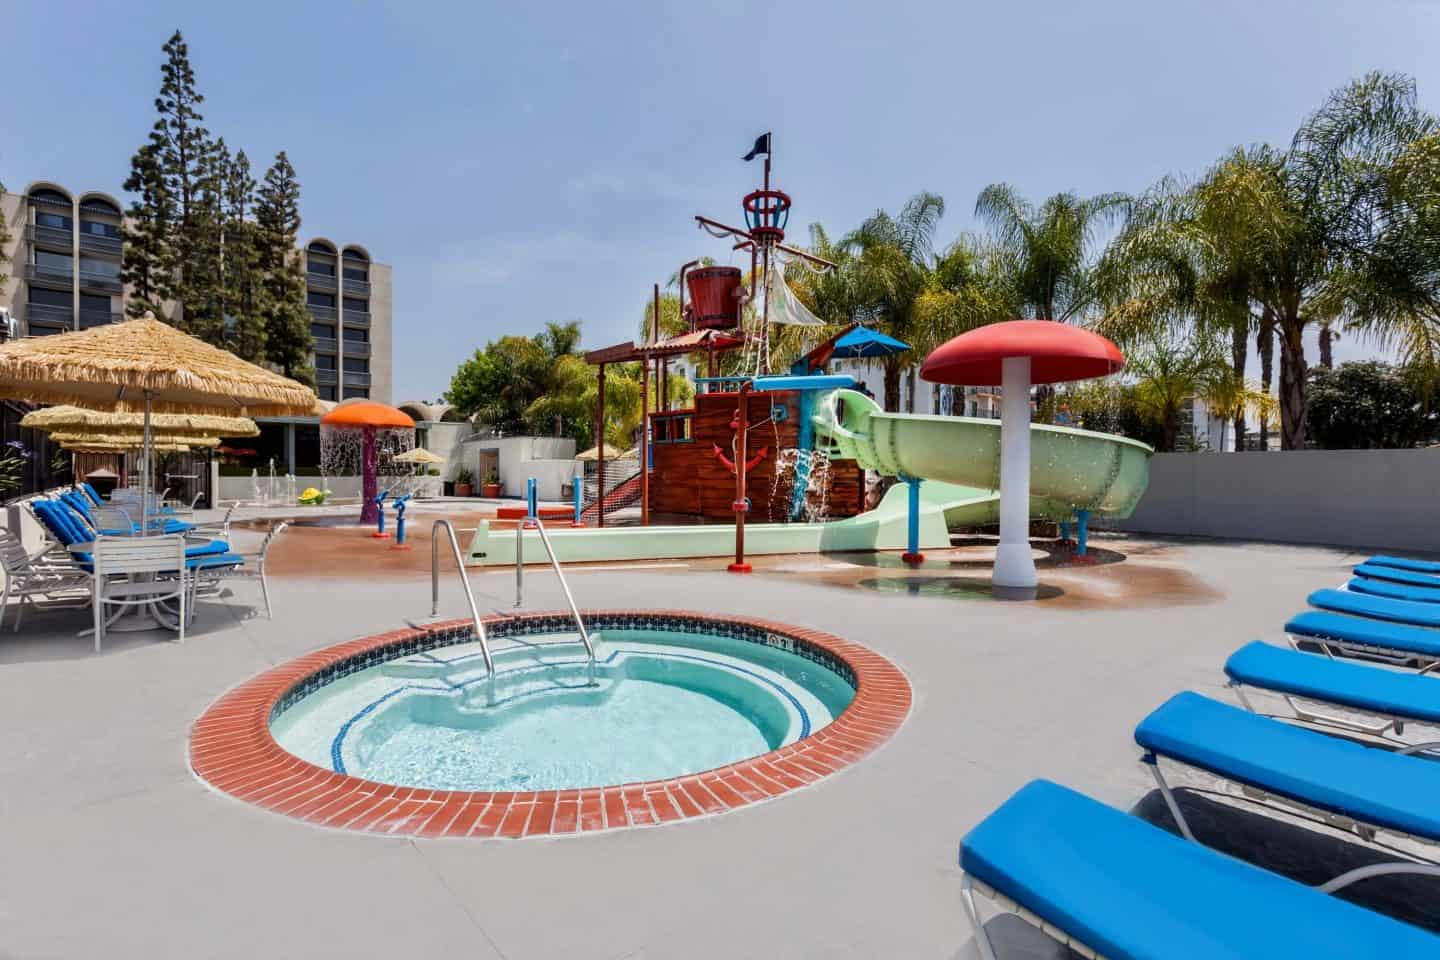 Howard Johnson Hotel and Water Playground